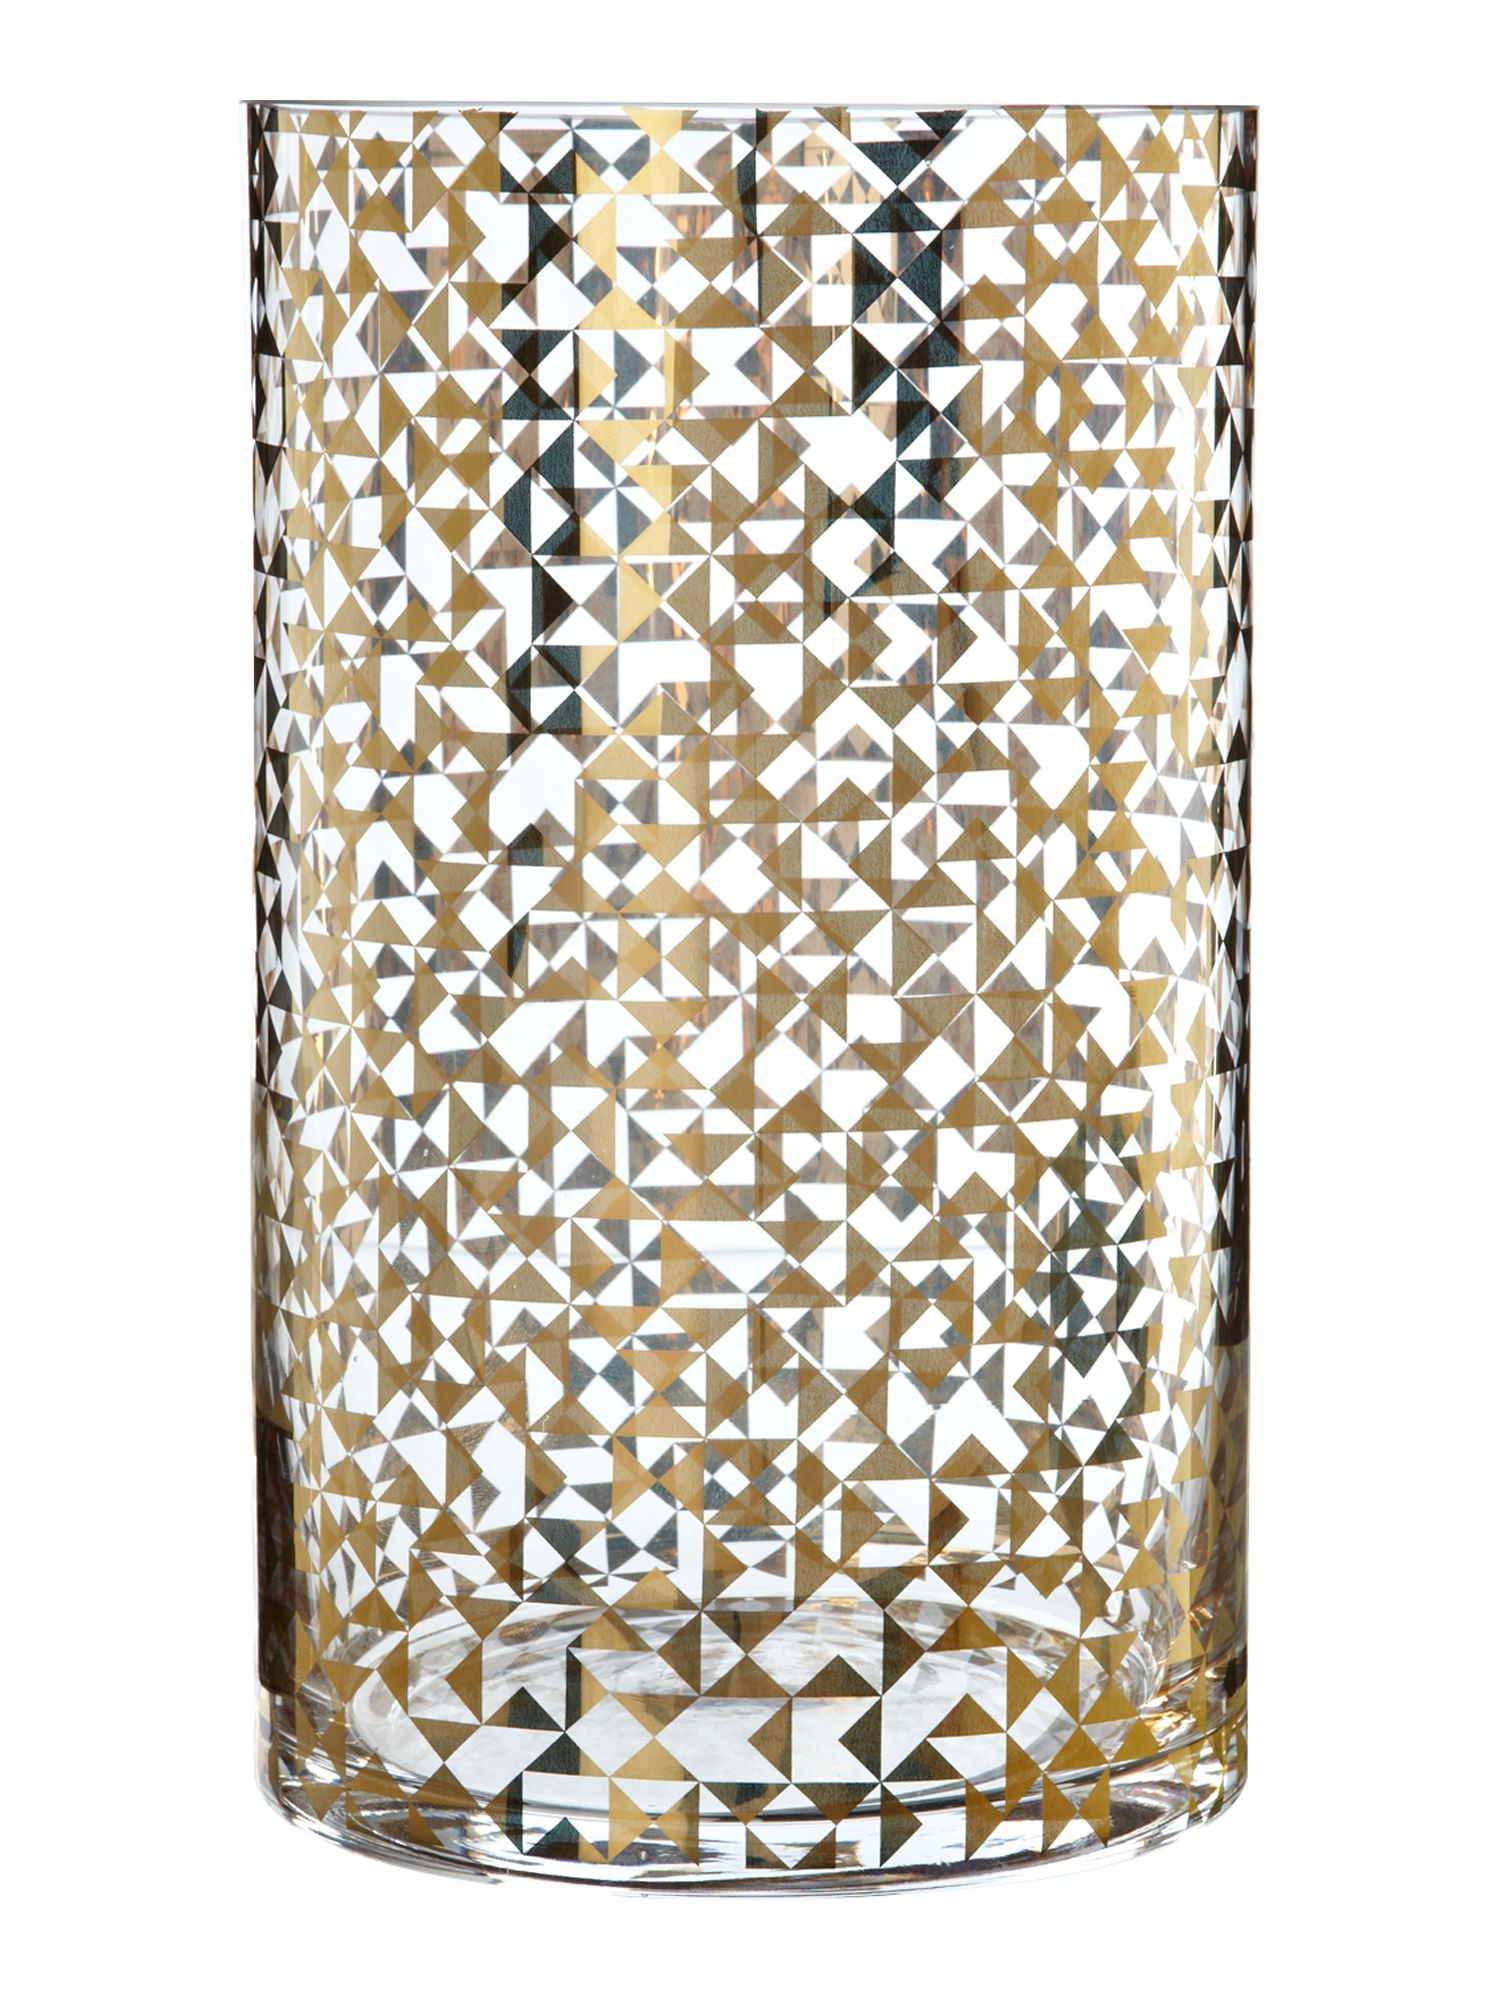 Gold geometric design vase, medium